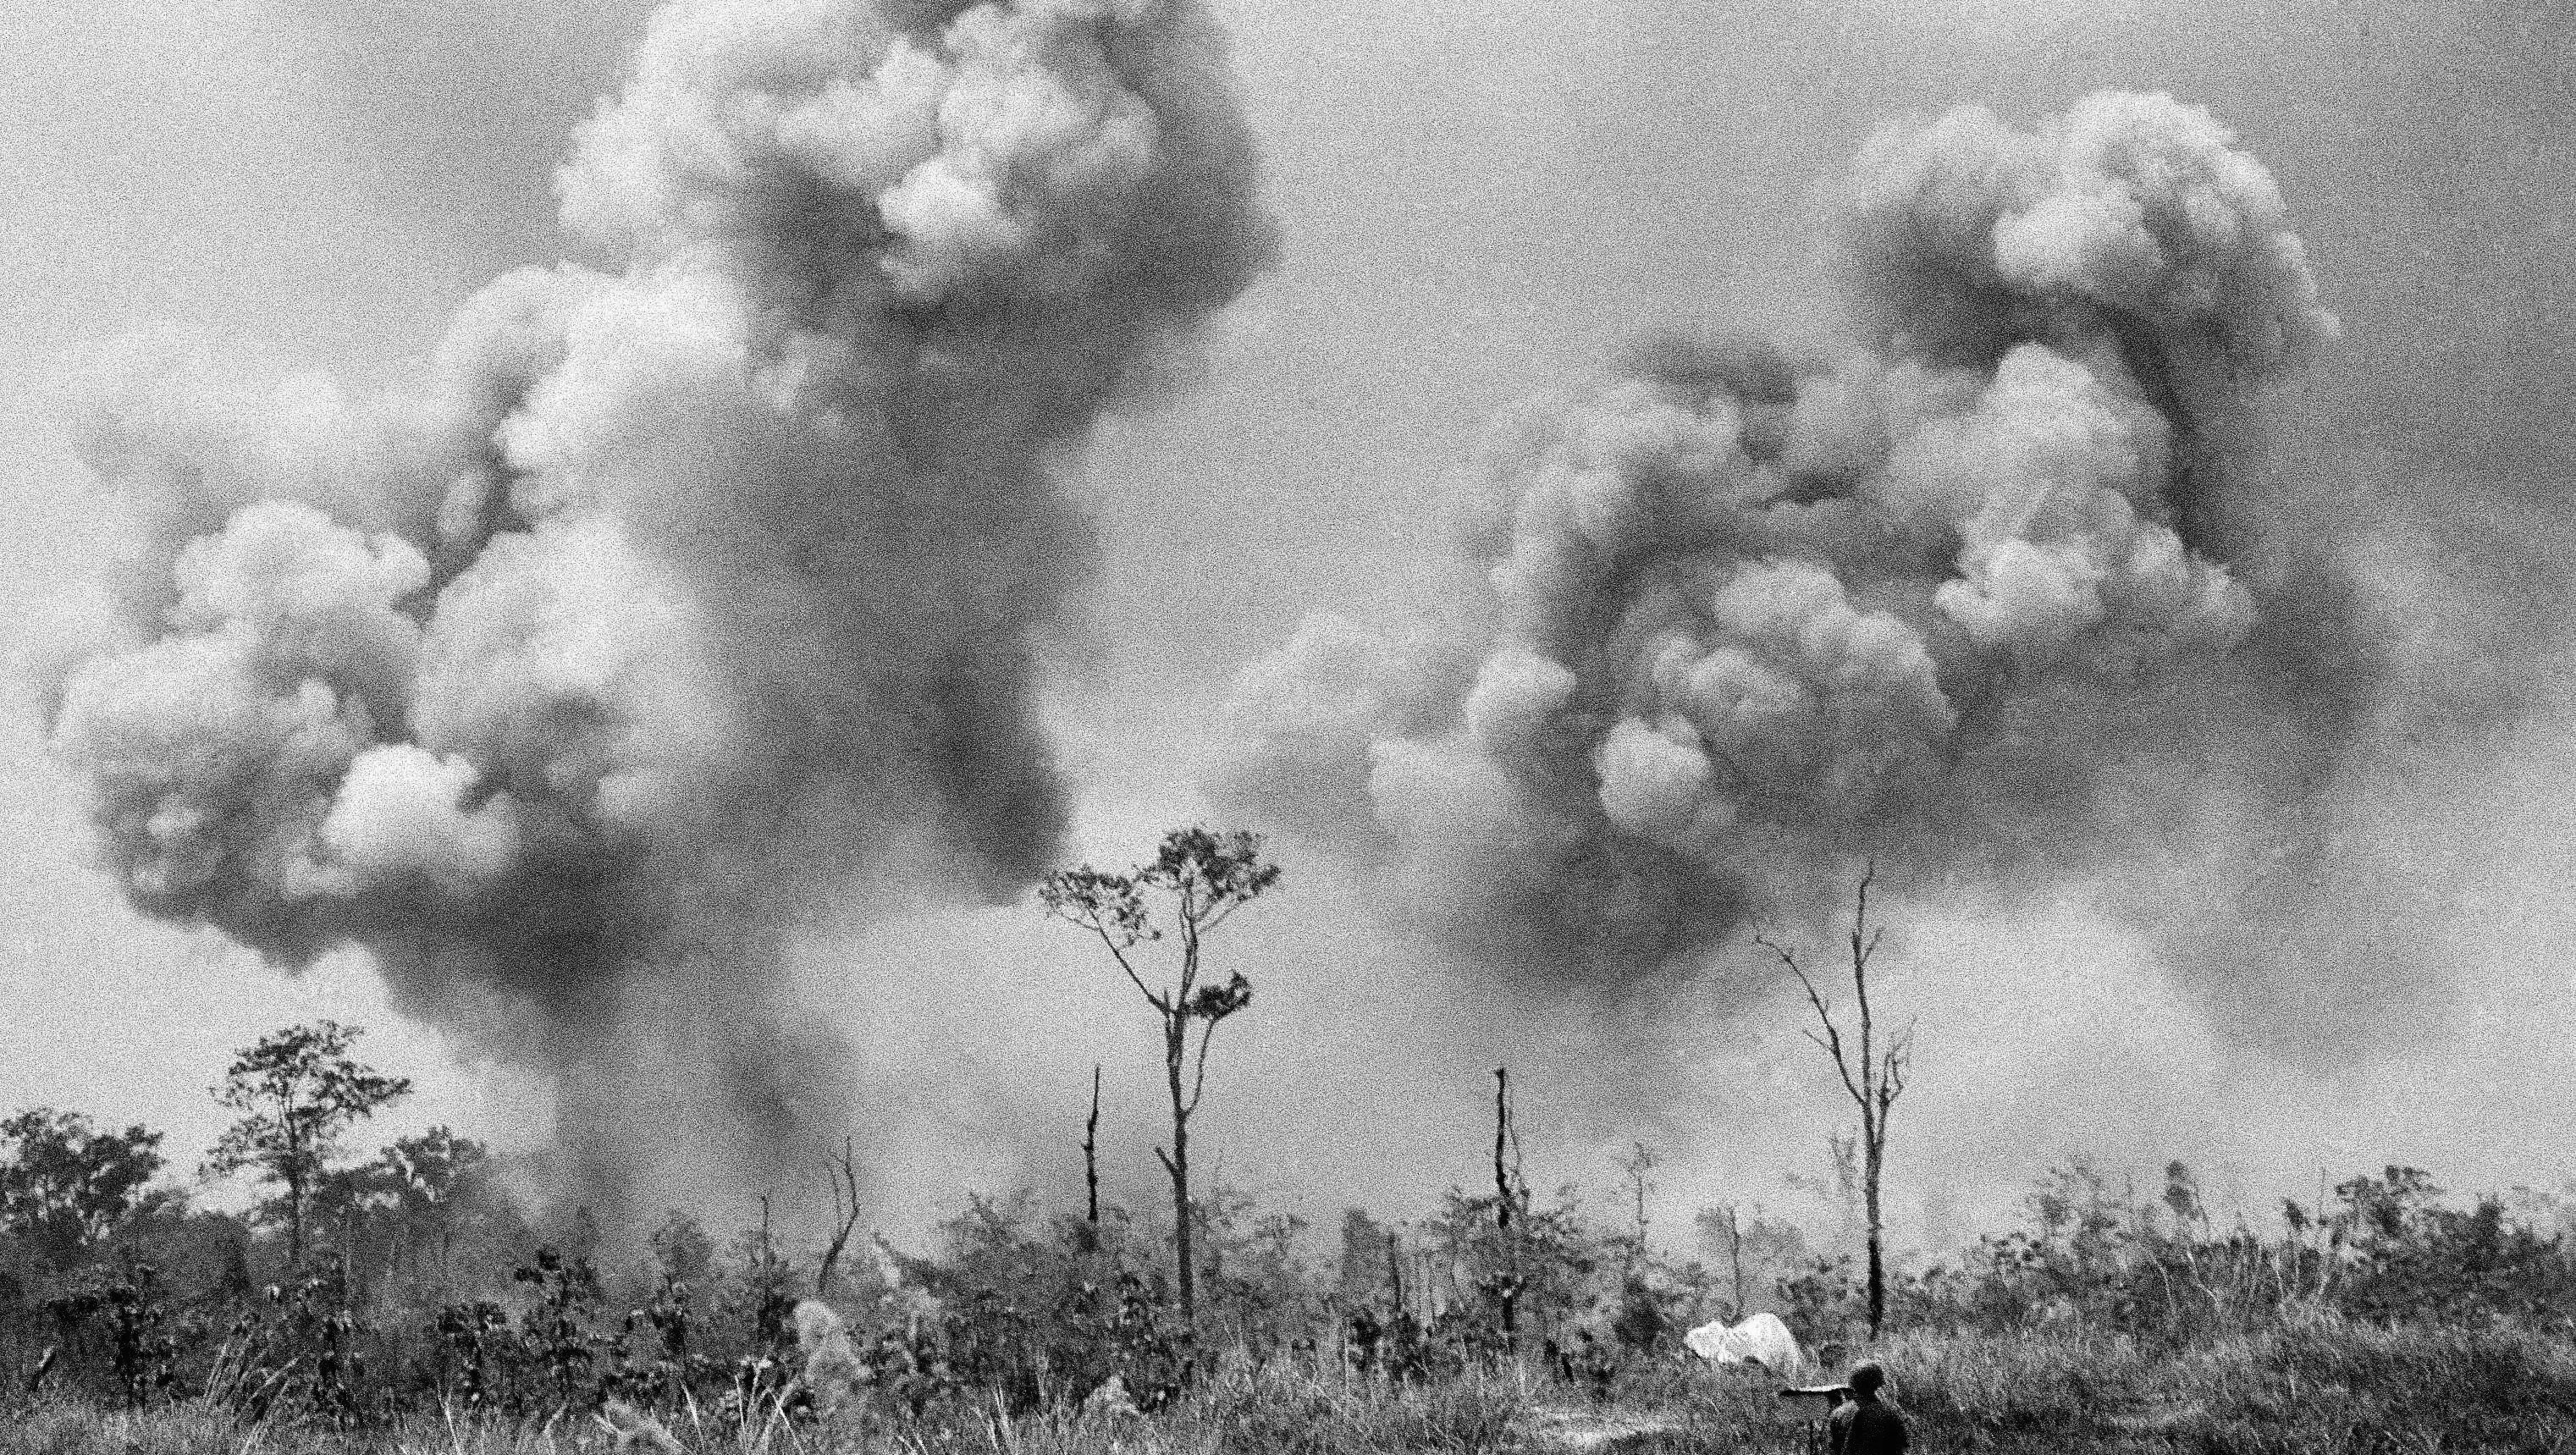 Vietnam War perspective: the unreconciled conflict